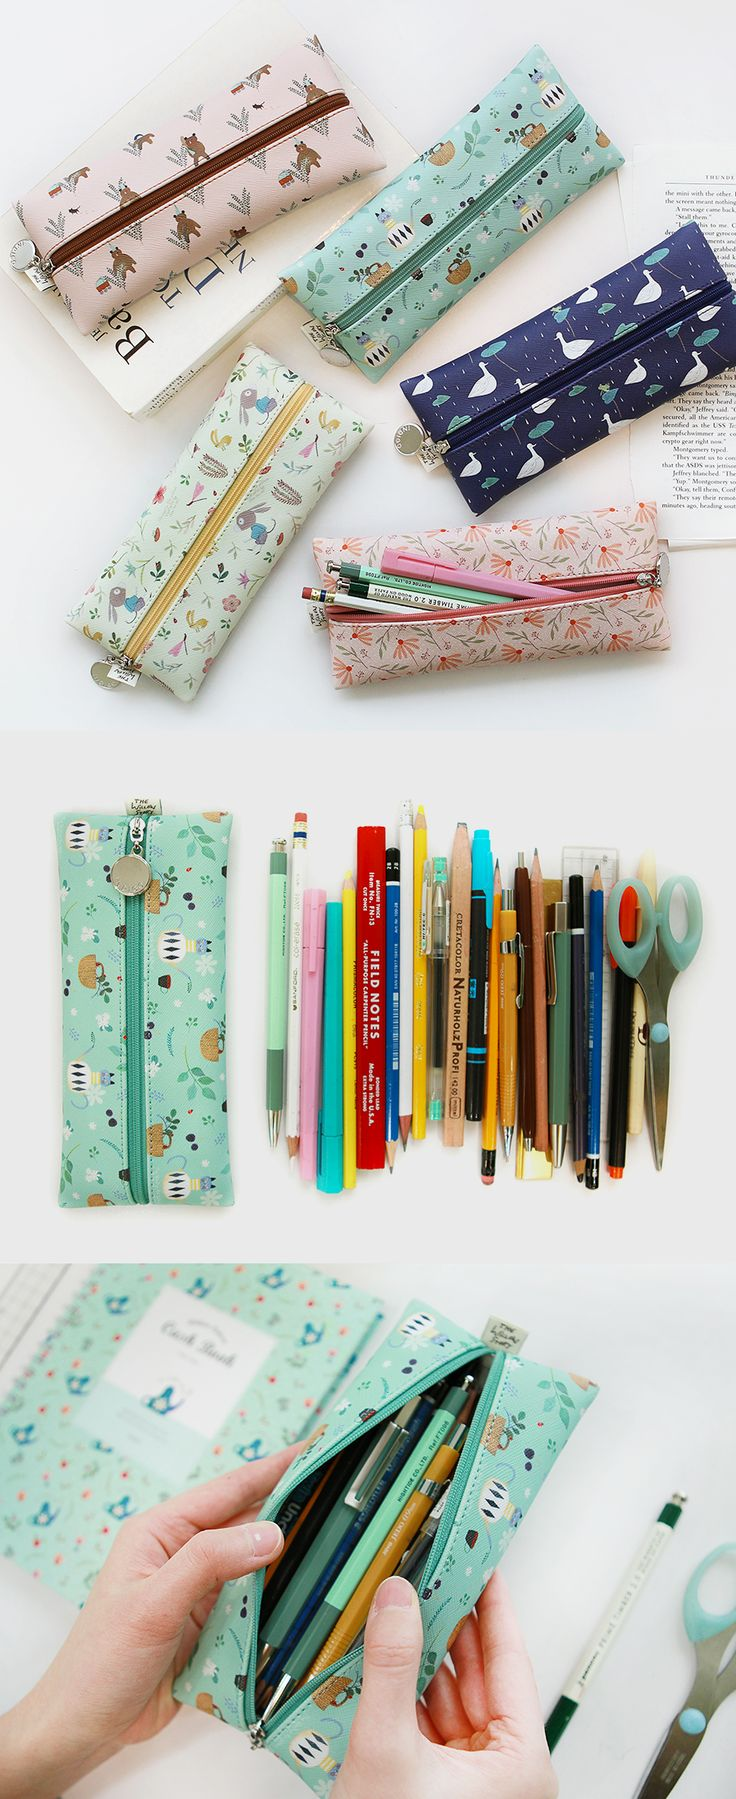 This flat pen case with adorable patterns is a pen case you'd definitely want to carry with you at all times!